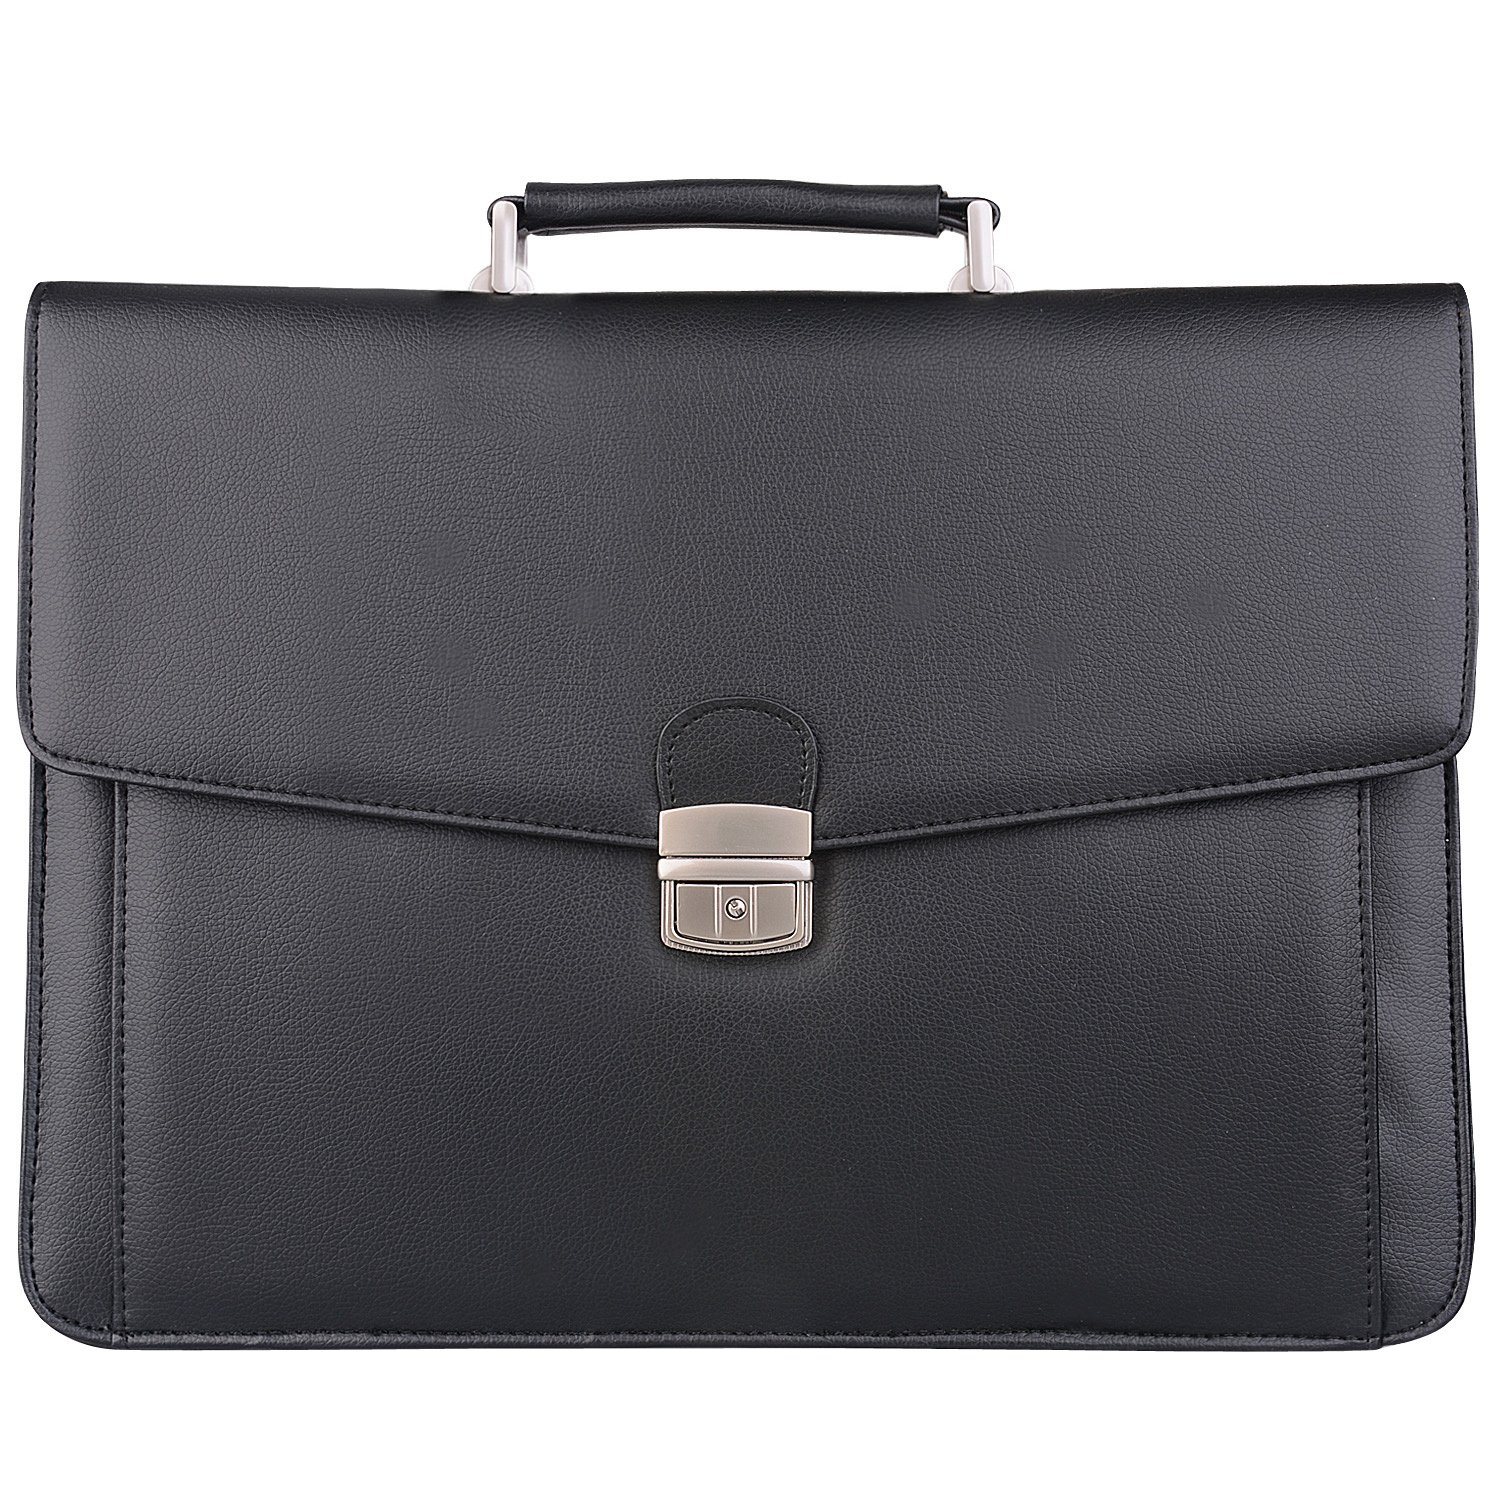 Jack&Chris New PU Leather Briefcase Messenger Bag Laptop Bag, MBYX012, Clasp Upgrade